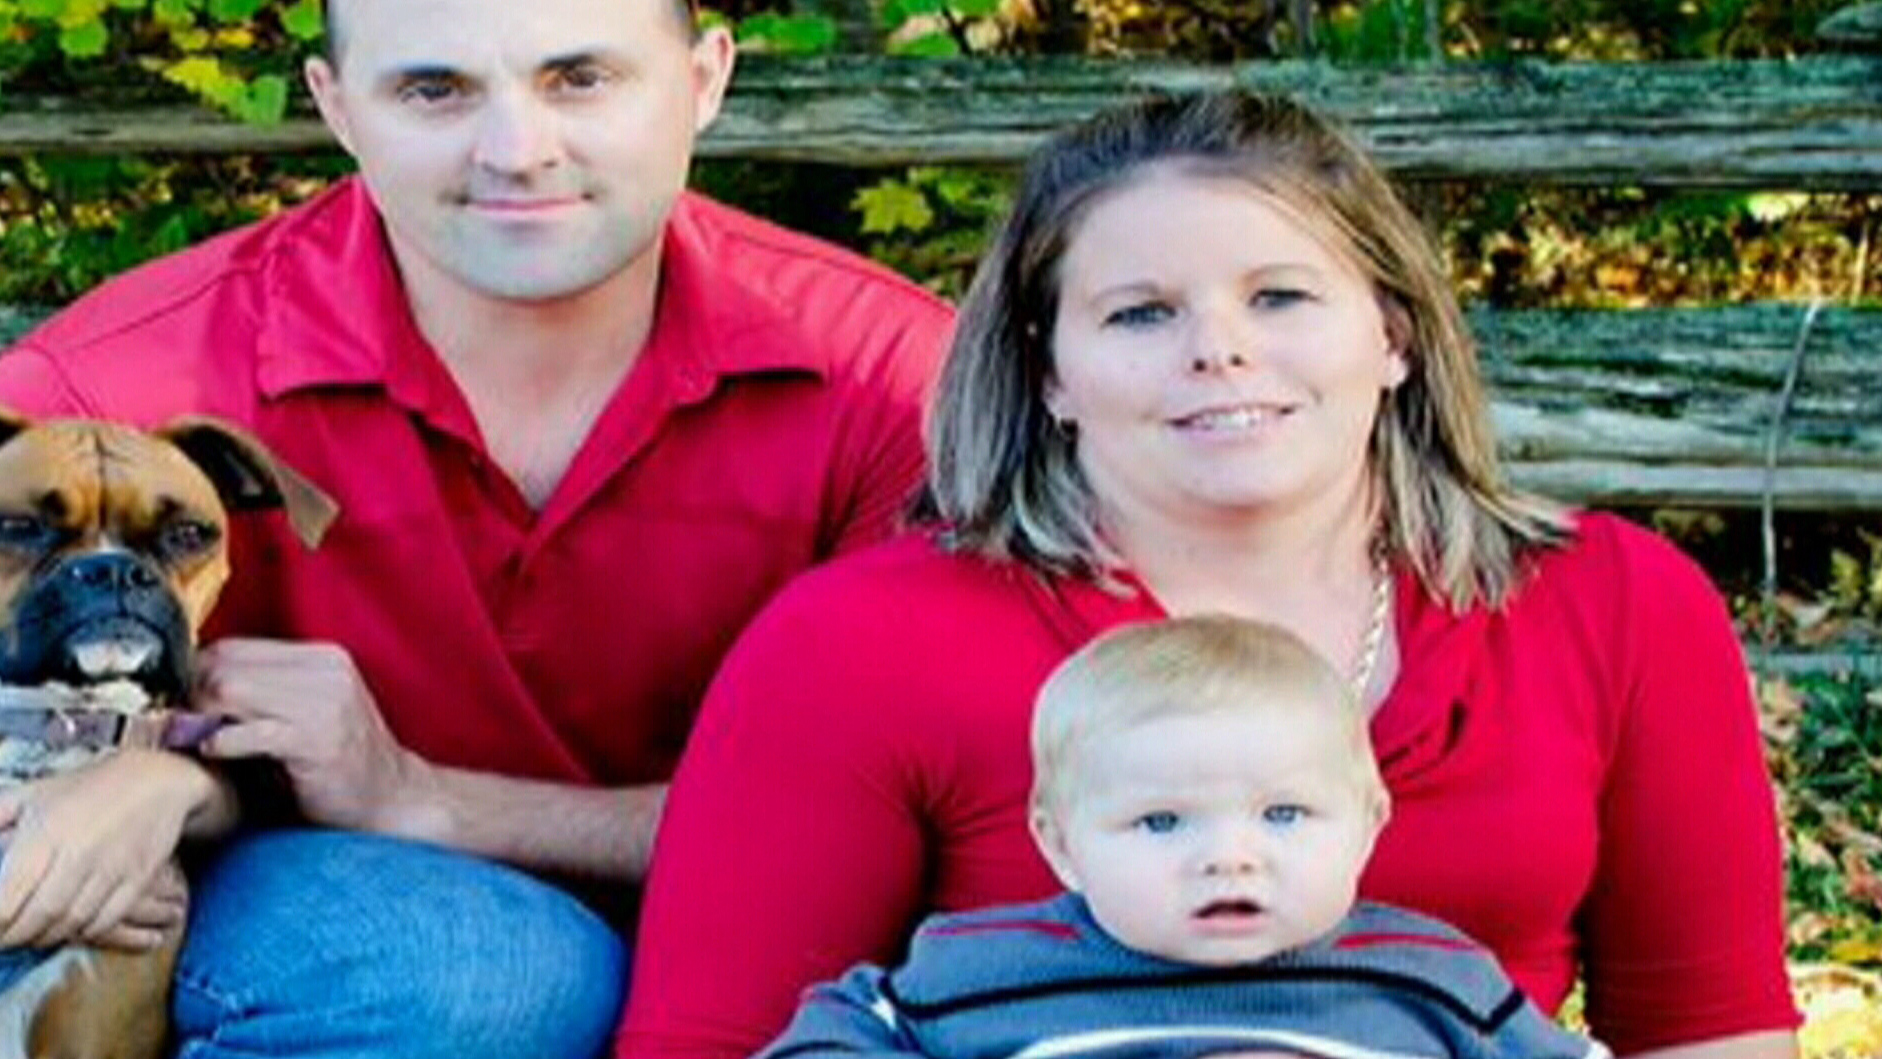 After Their Two-Year-Old Son Died During His Nap, These Parents Are Sharing Their Story To Warn Others After Their Two-Year-Old Son Died During His Nap, These Parents Are Sharing Their Story To Warn Others new foto